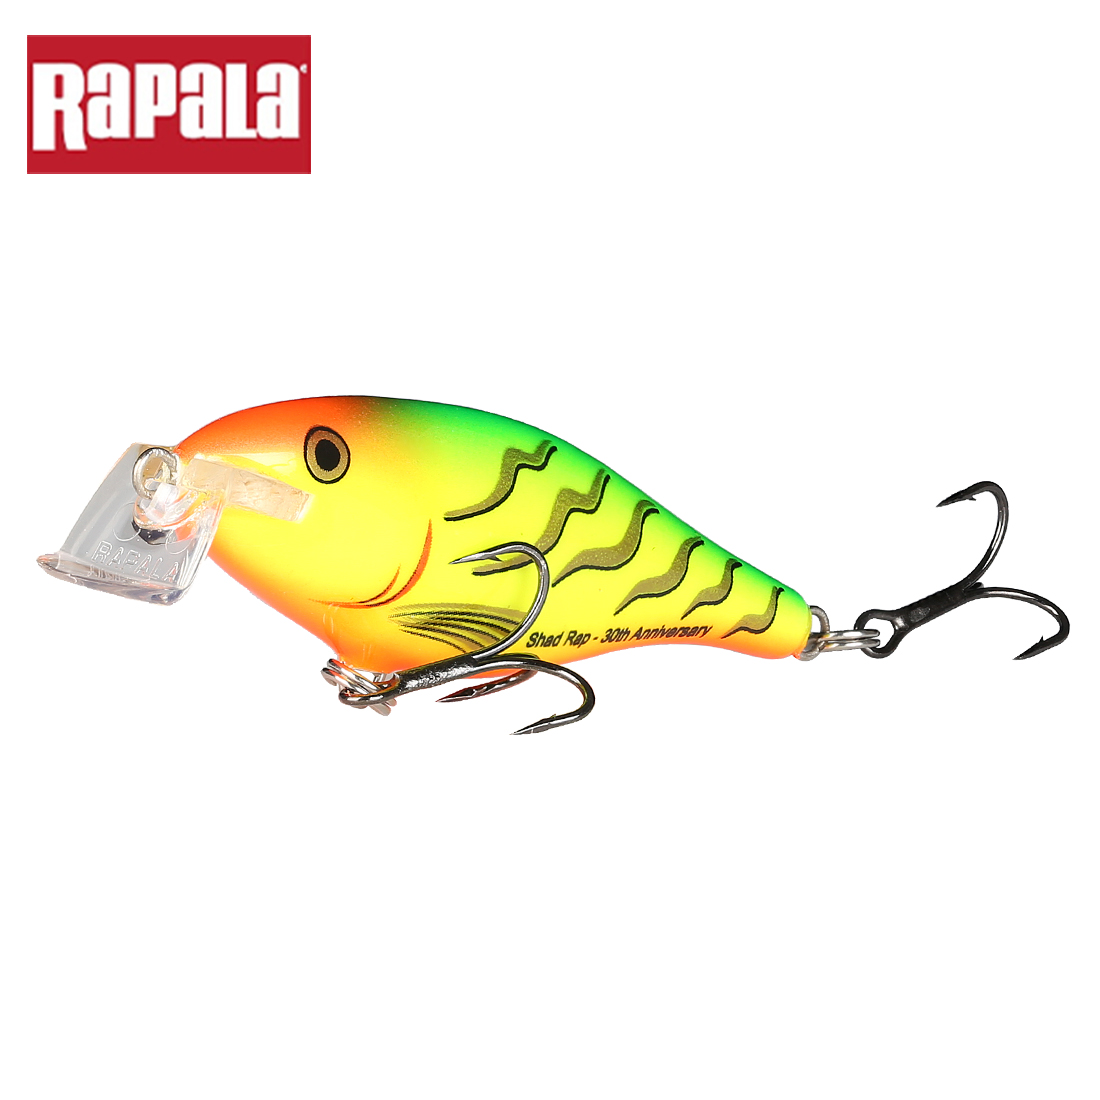 best umpan pancing minnow rapala brands and get free shipping - 4c4e8d6n